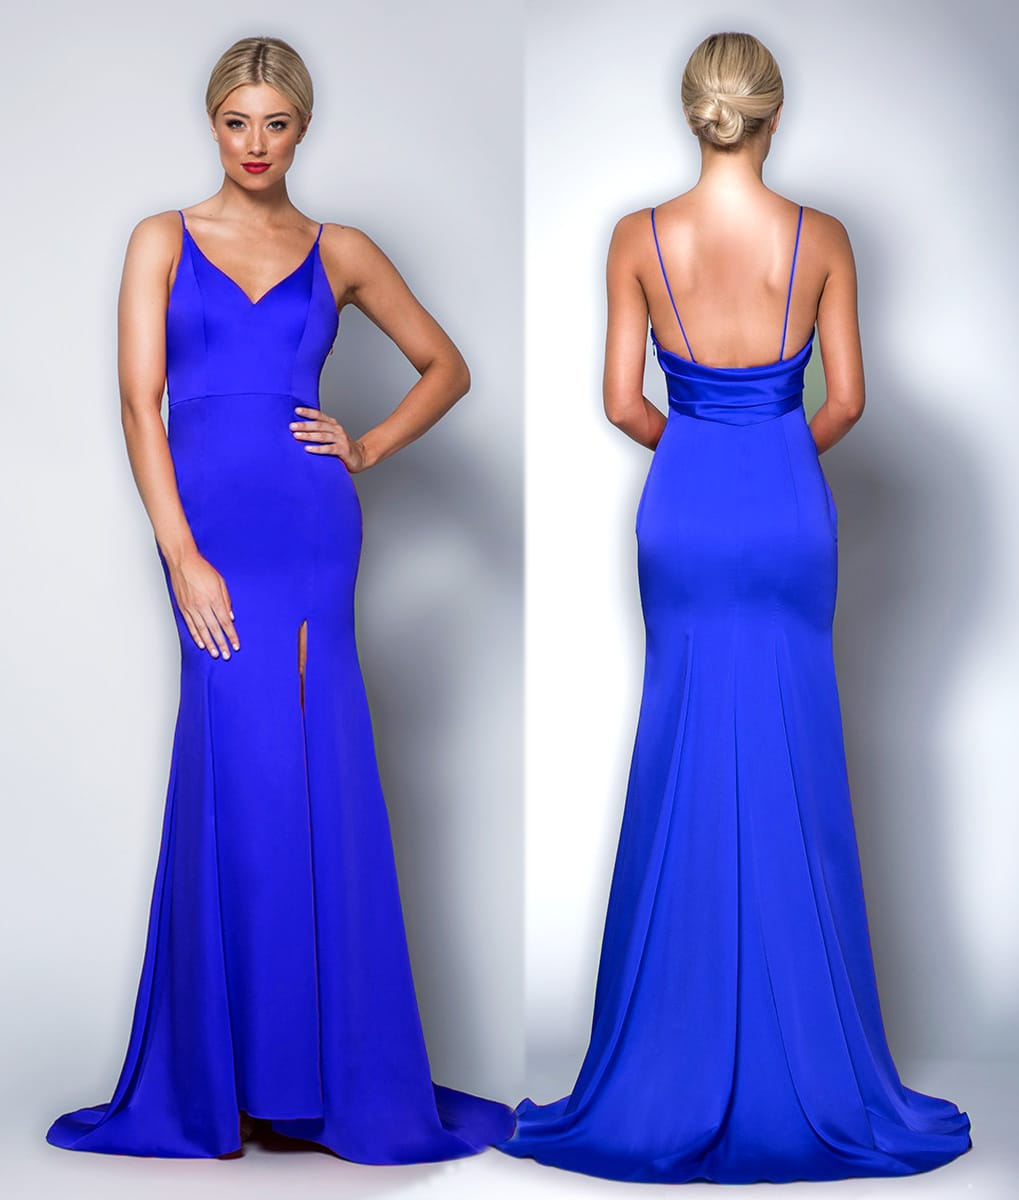 Bariano-Blue-Silk-Gown-Alila-Debs